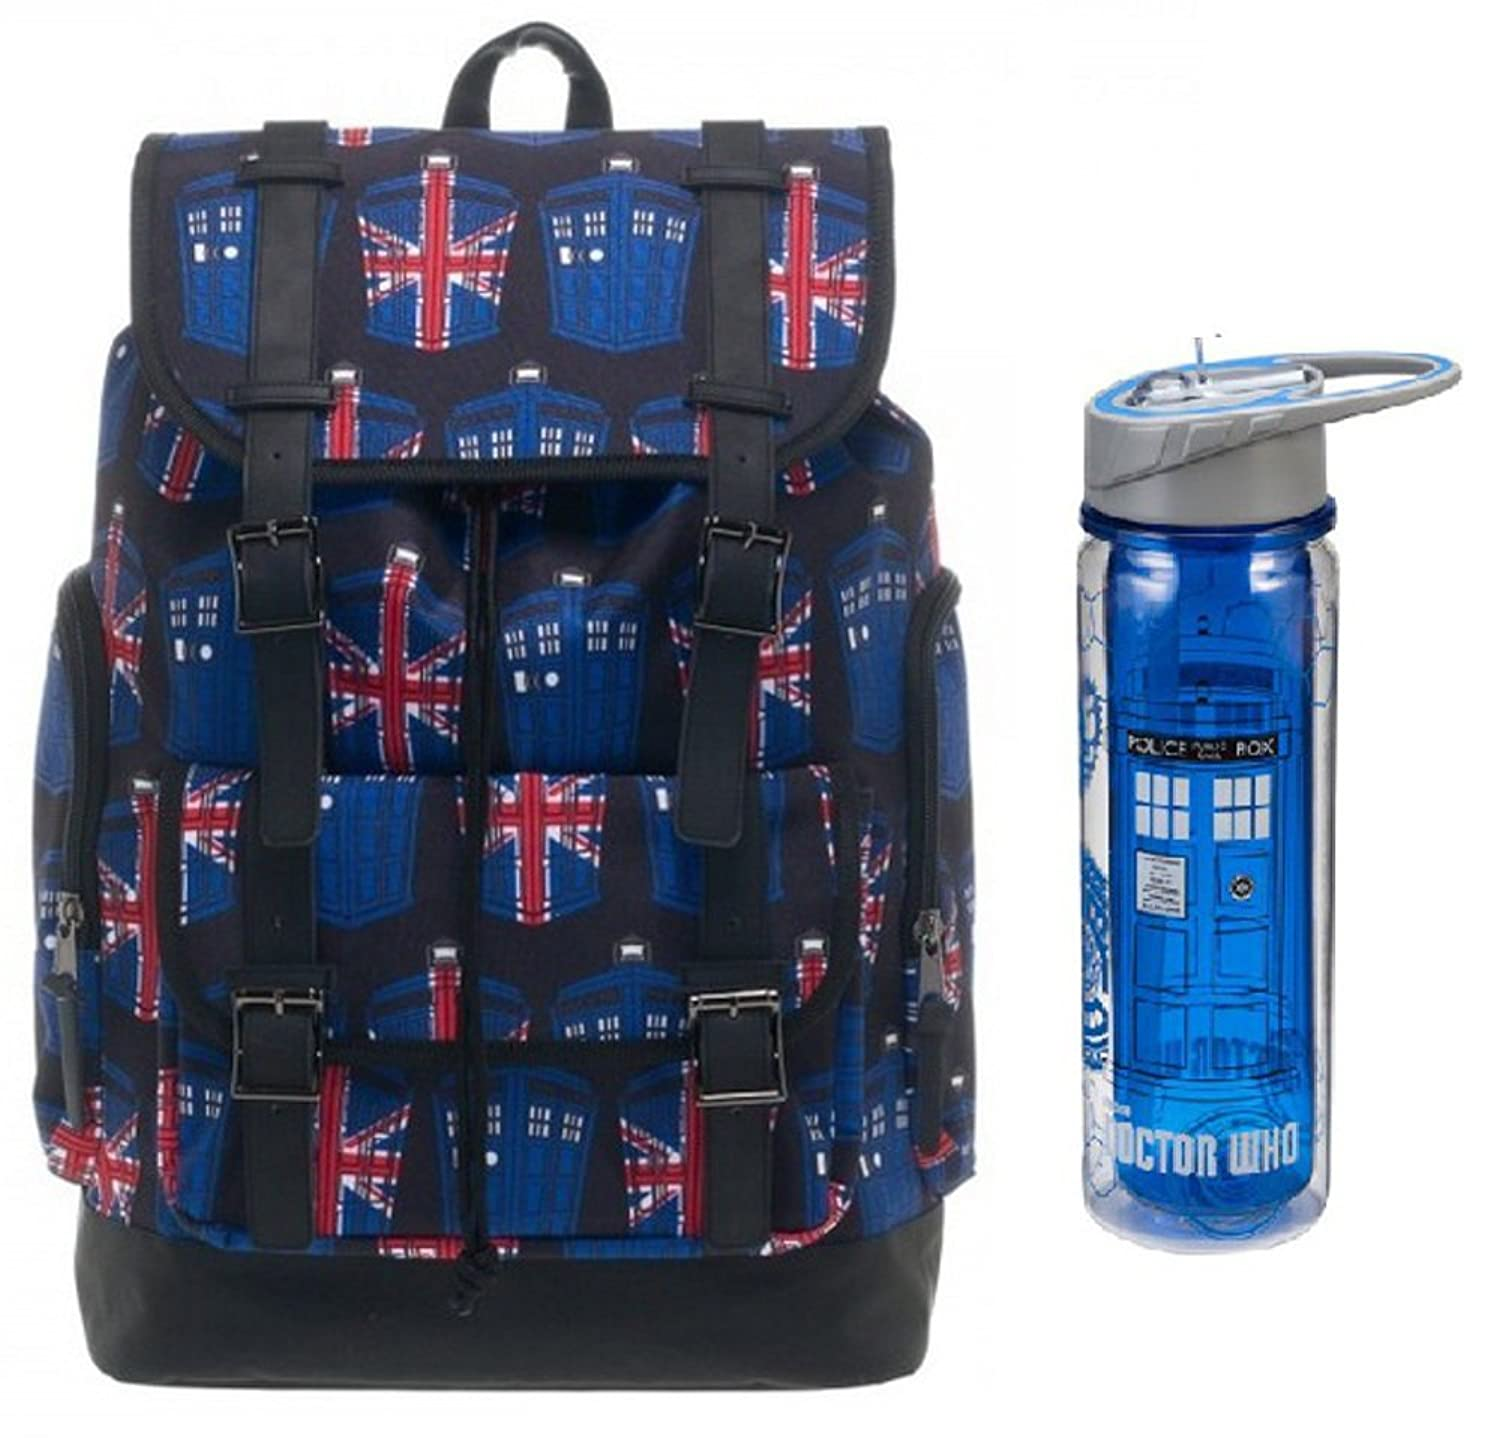 Doctor Who Unique Backpack and Water Bottle Bundle Set School Supplies